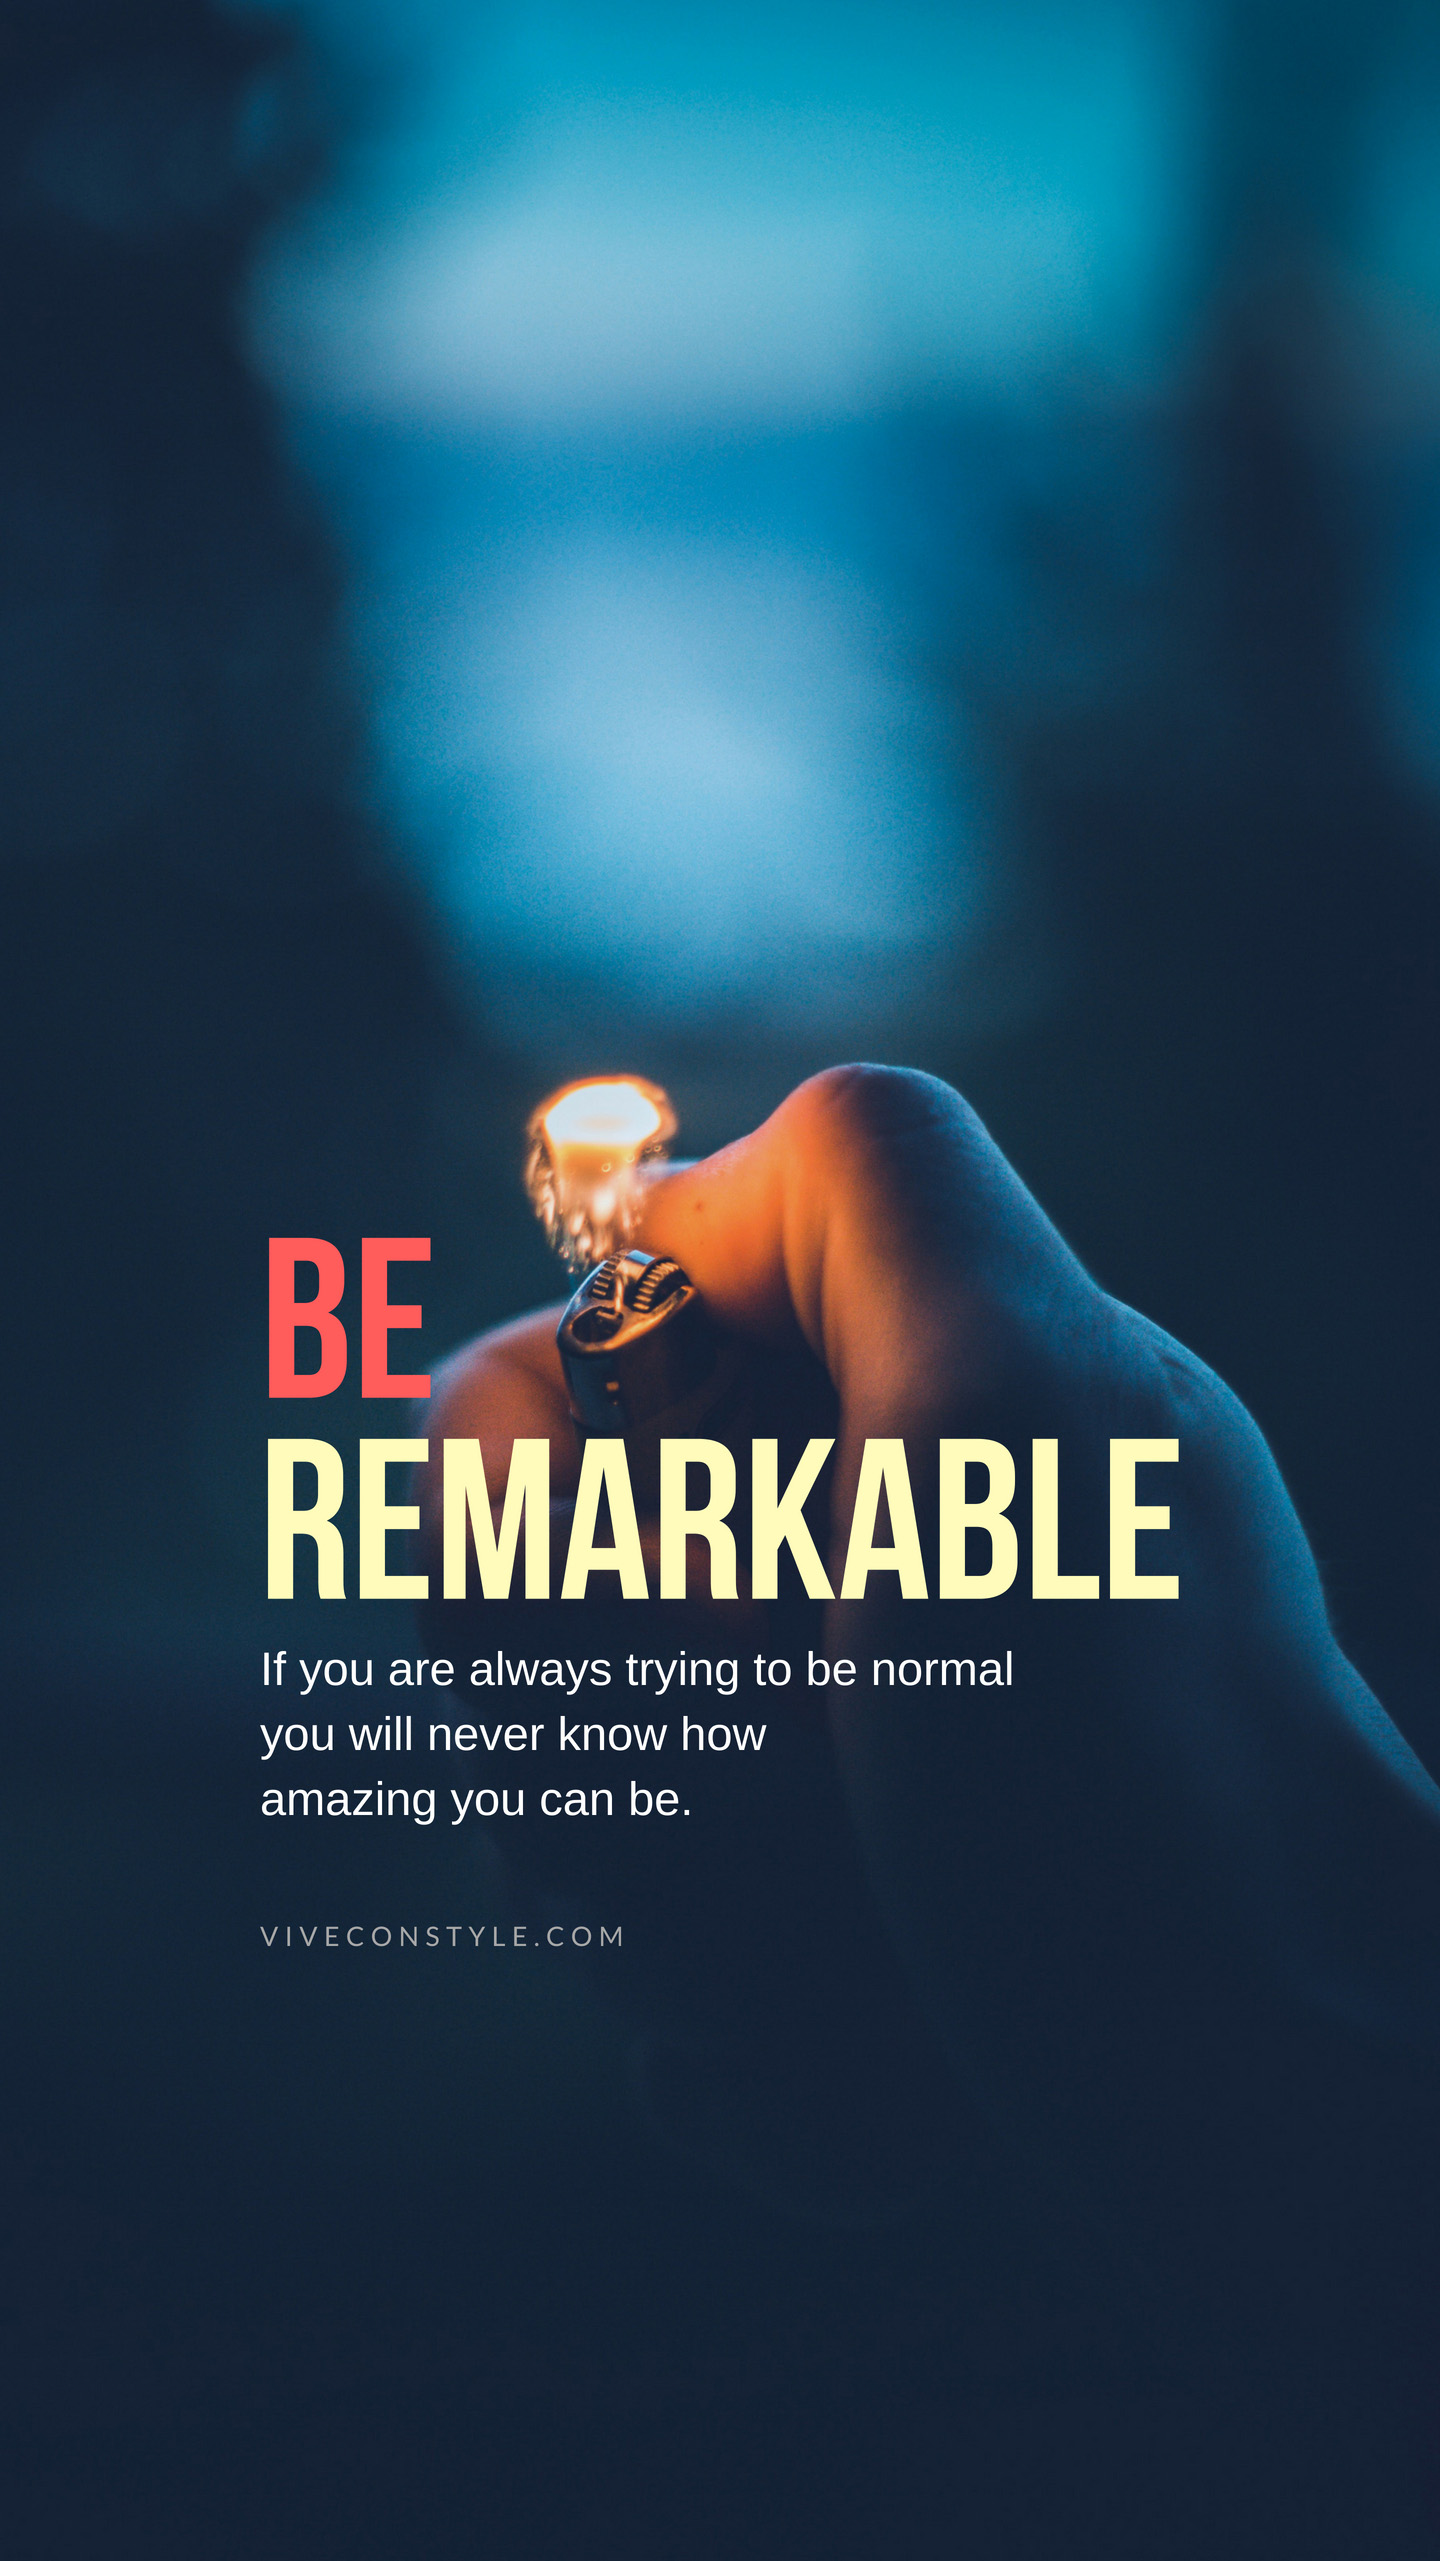 Be remarkable quotes mobile wallpaper